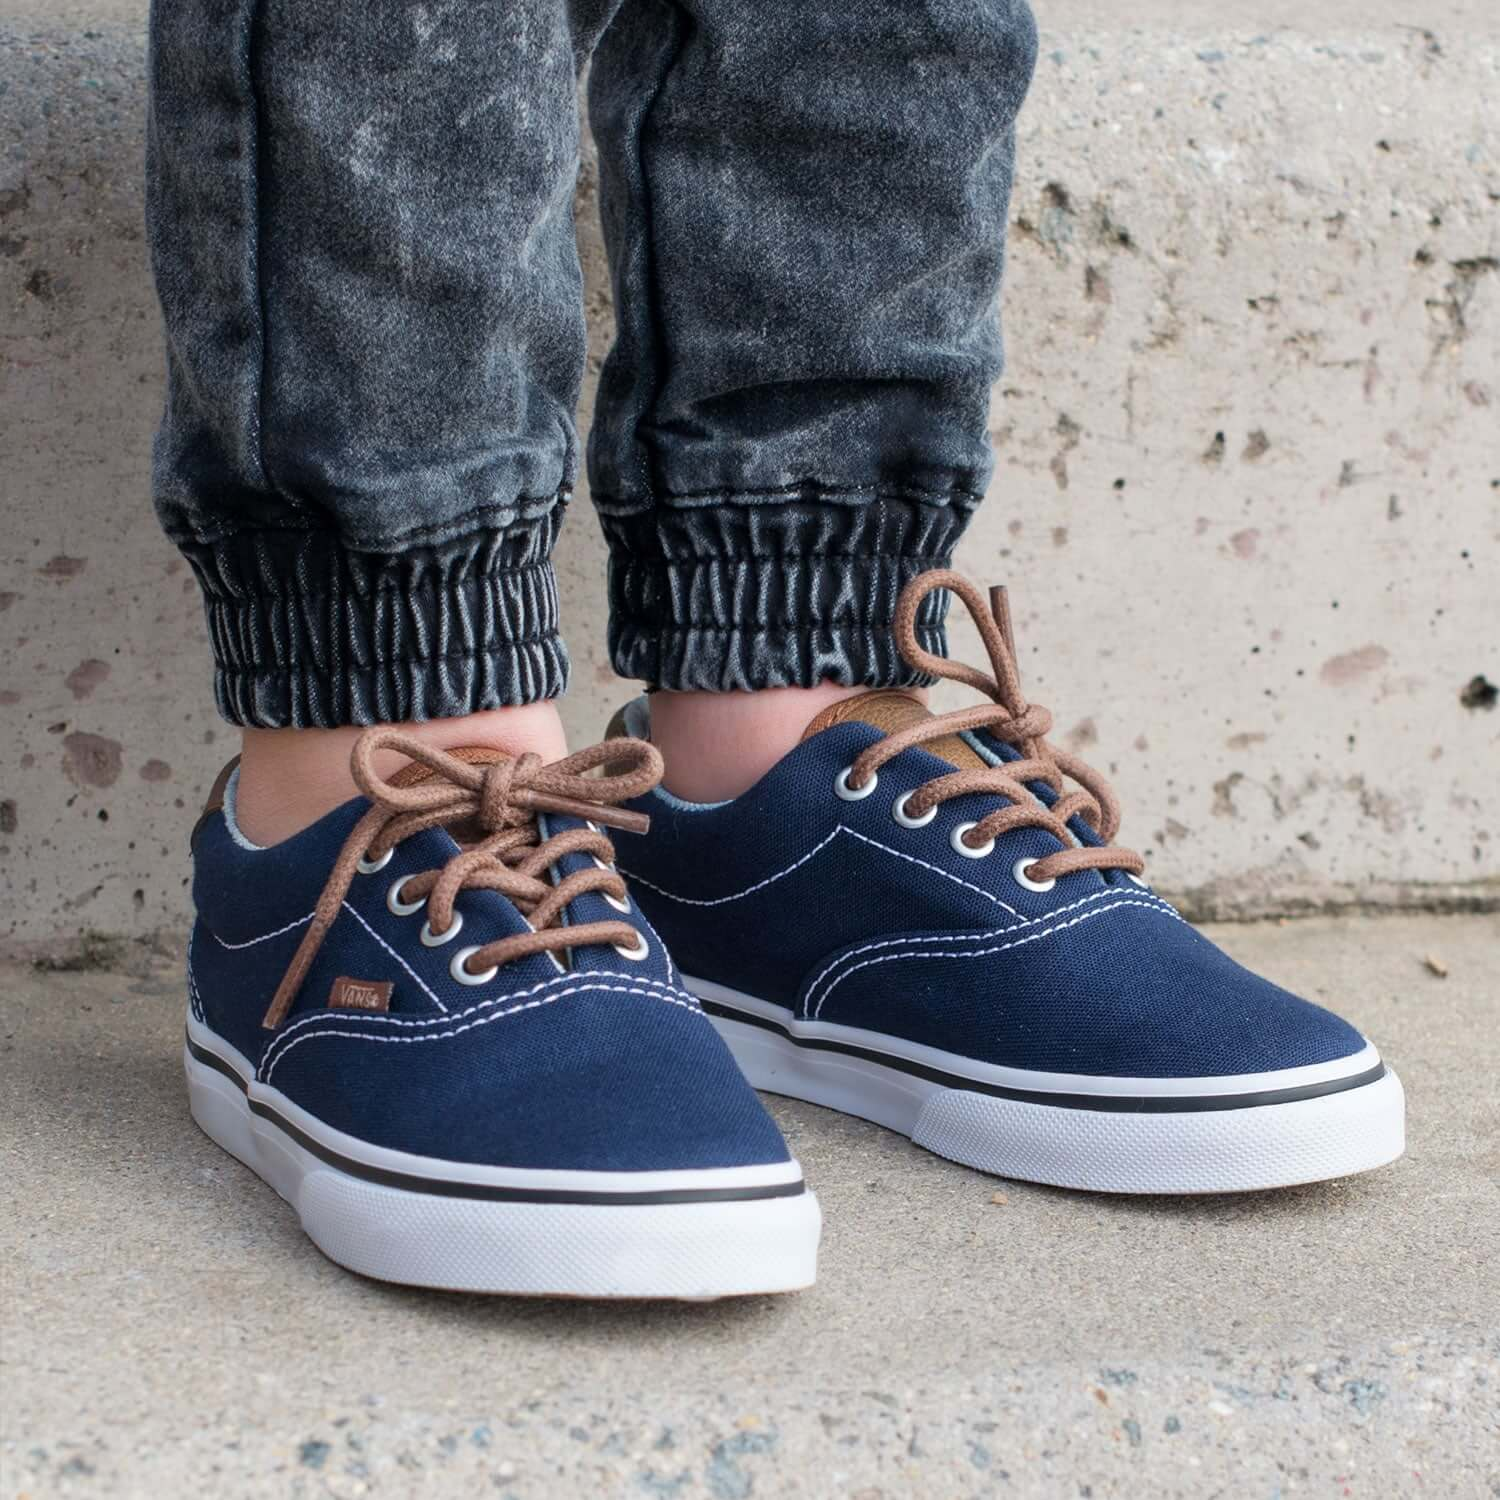 Vans Era 59 Kids Sneaker – Navy Lifestyle 4